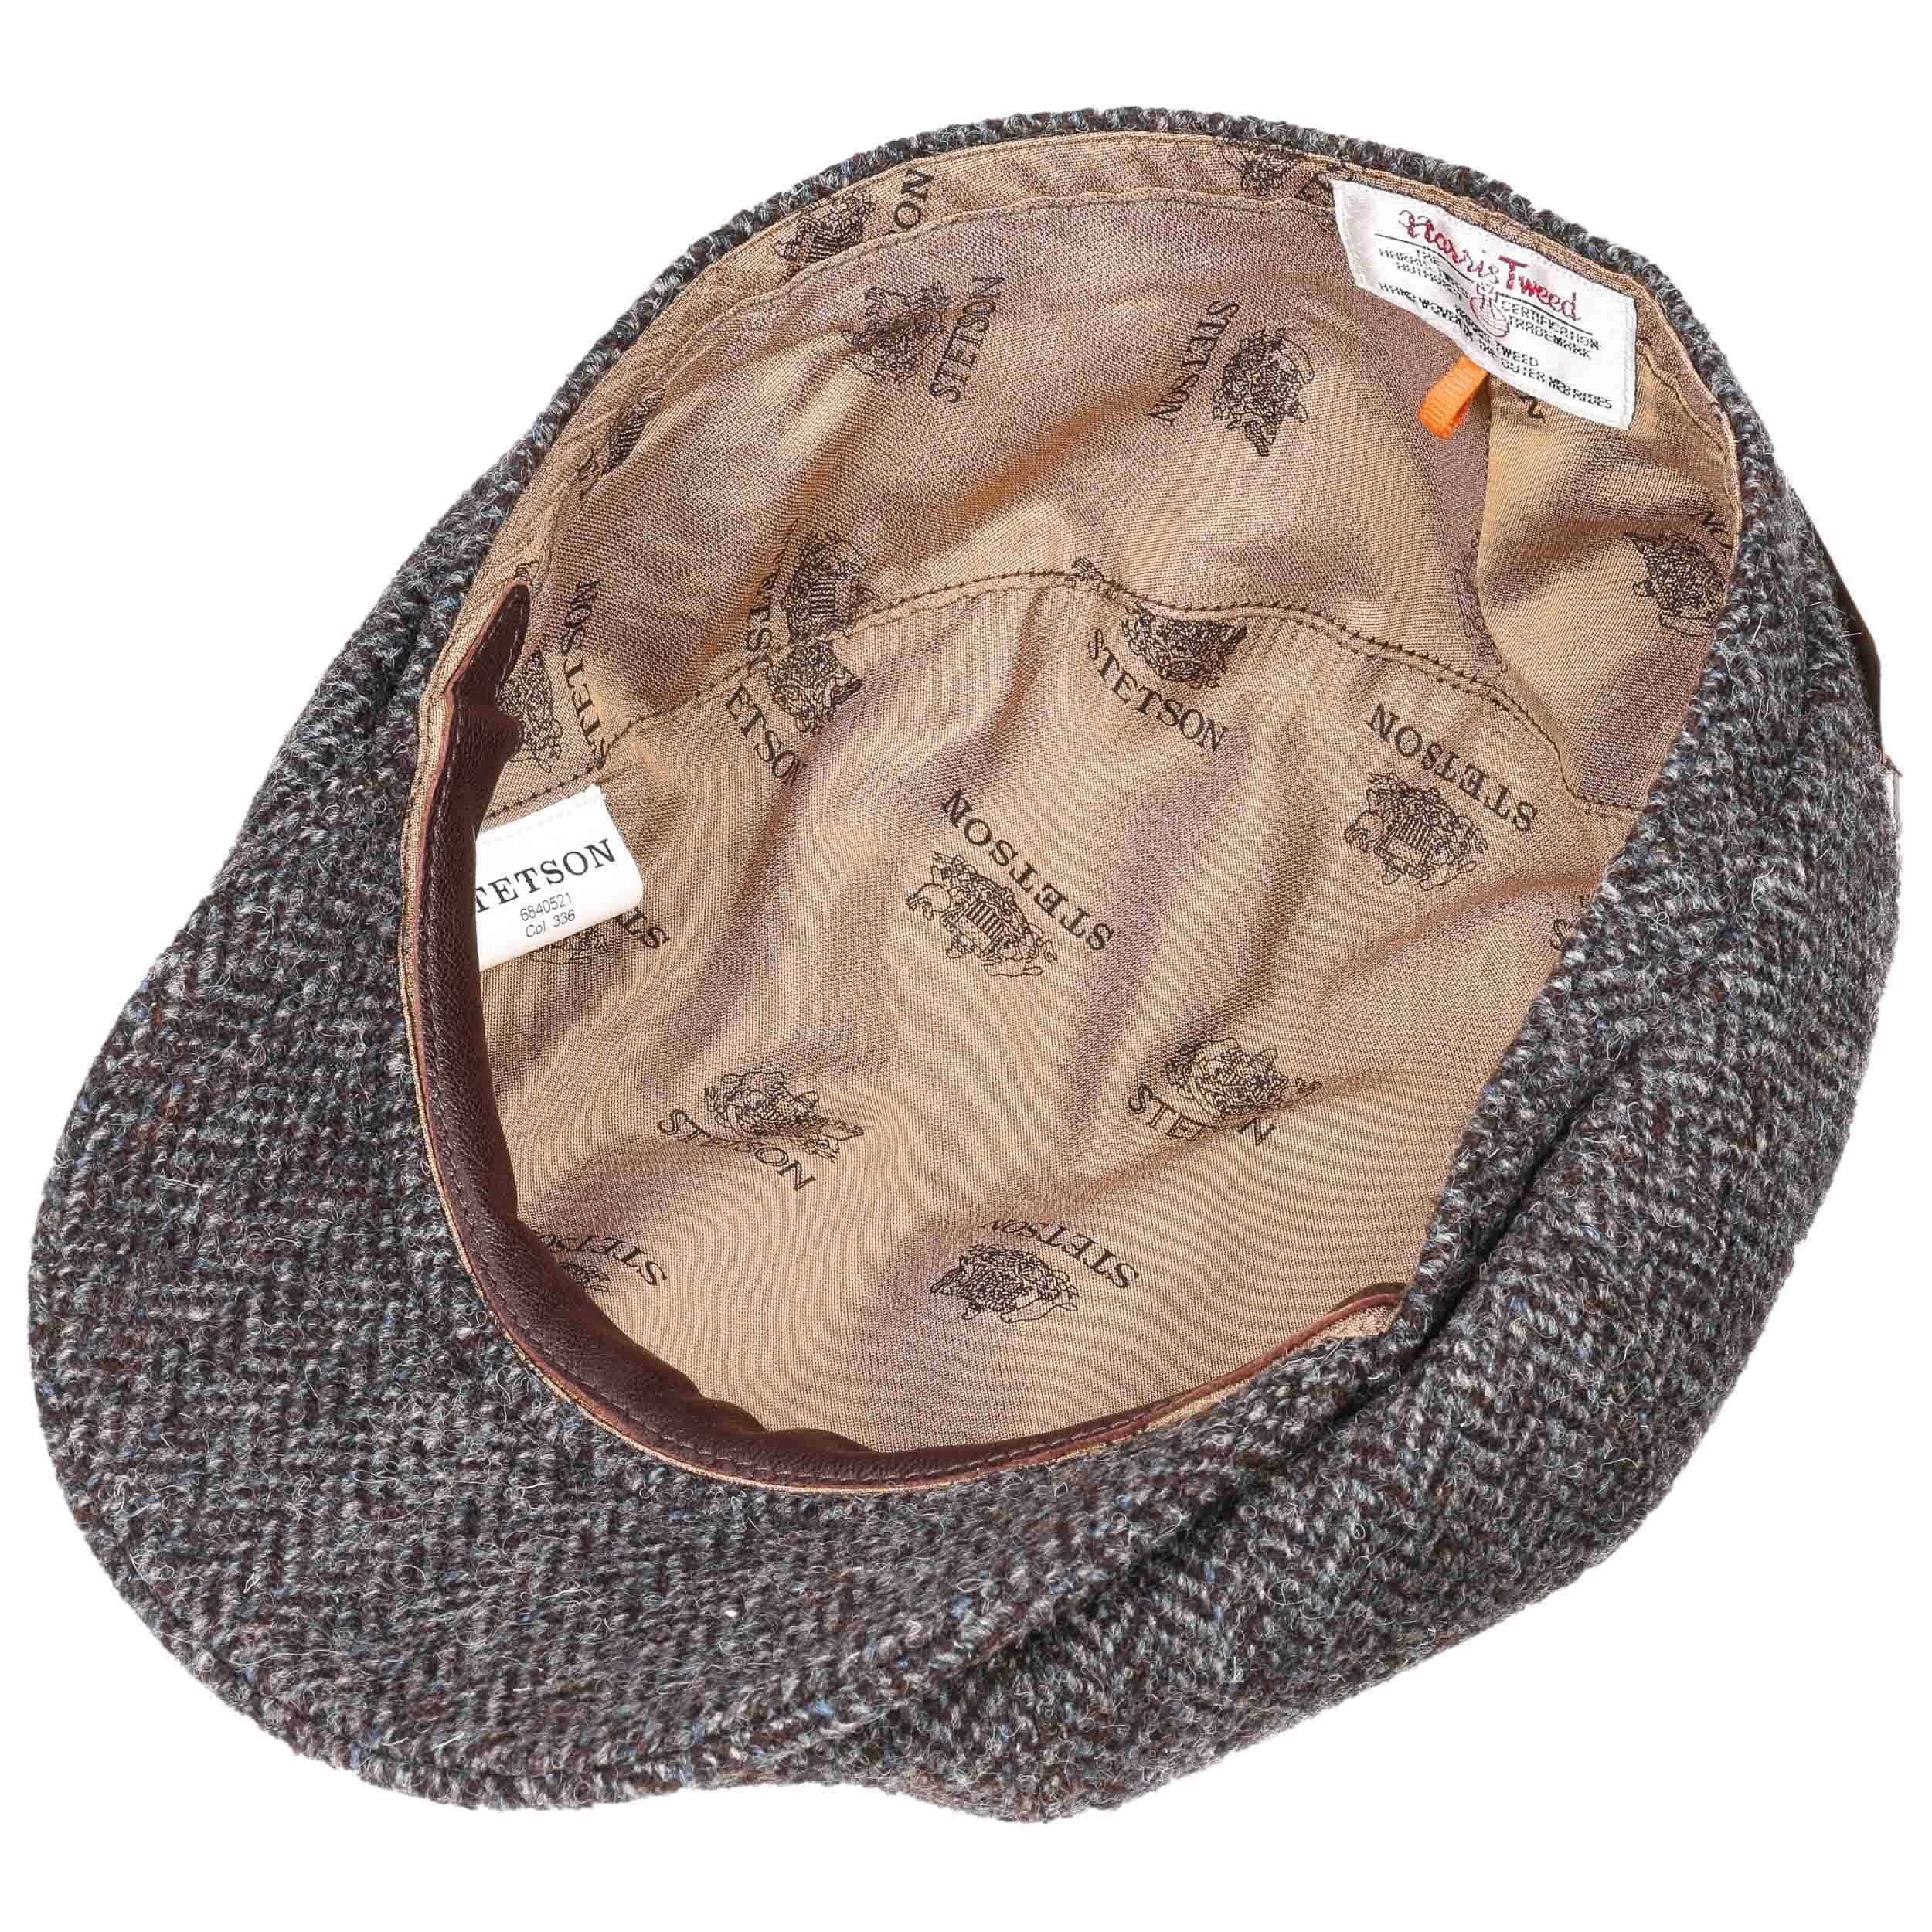 068f45fcd61 ... Hatteras Harris Tweed Newsy Cap by Stetson - brown 2 ...